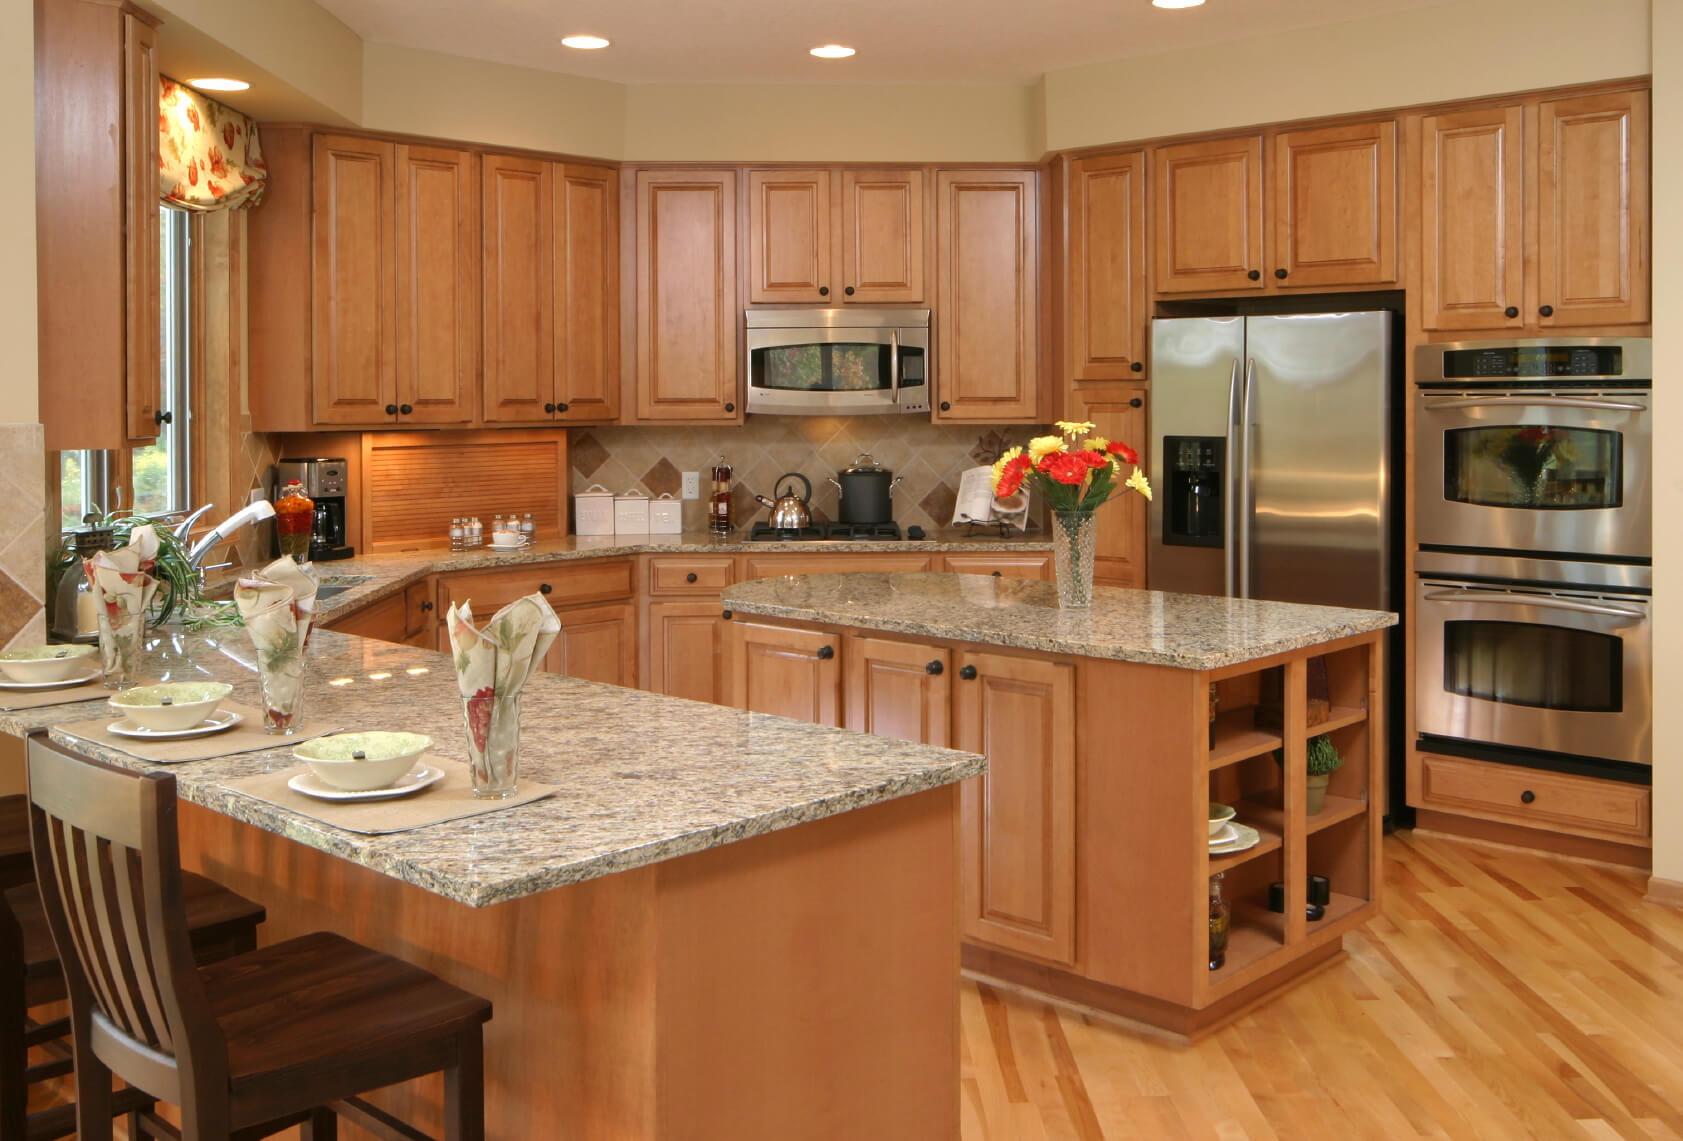 u shaped kitchen designs u shaped kitchen designs Solidly U shaped kitchen here awash in warm natural wood tones from the floors